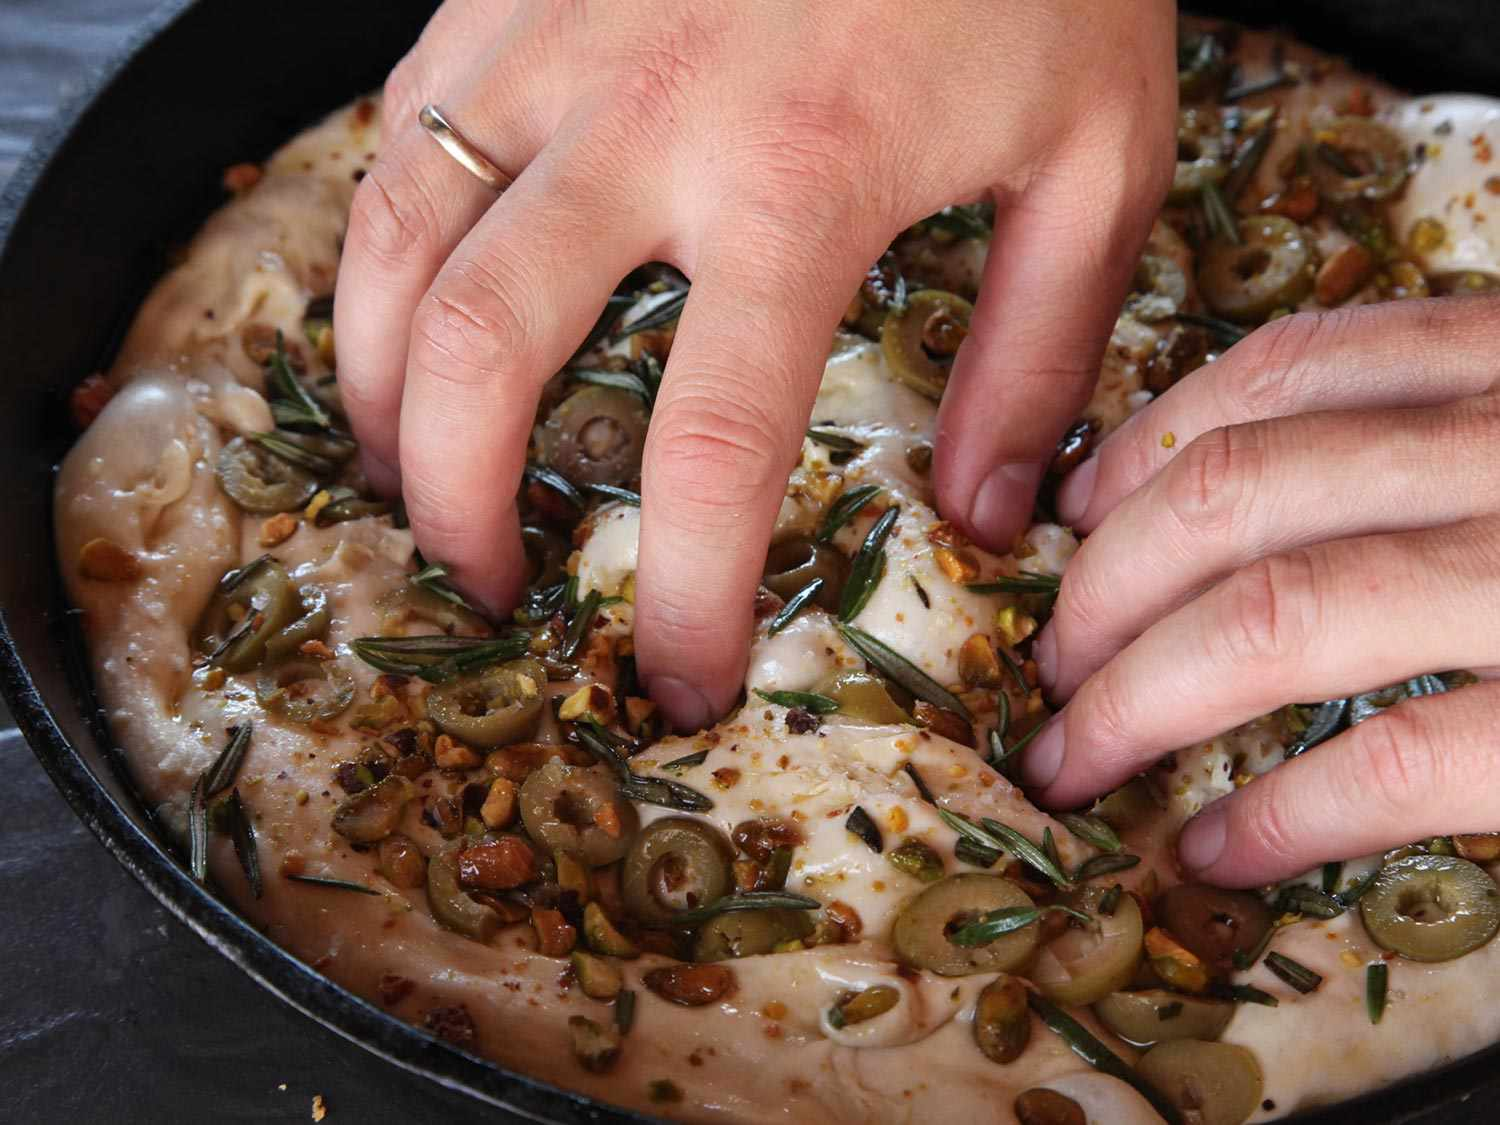 Pressing olives and pistachios into focaccia dough with fingertips